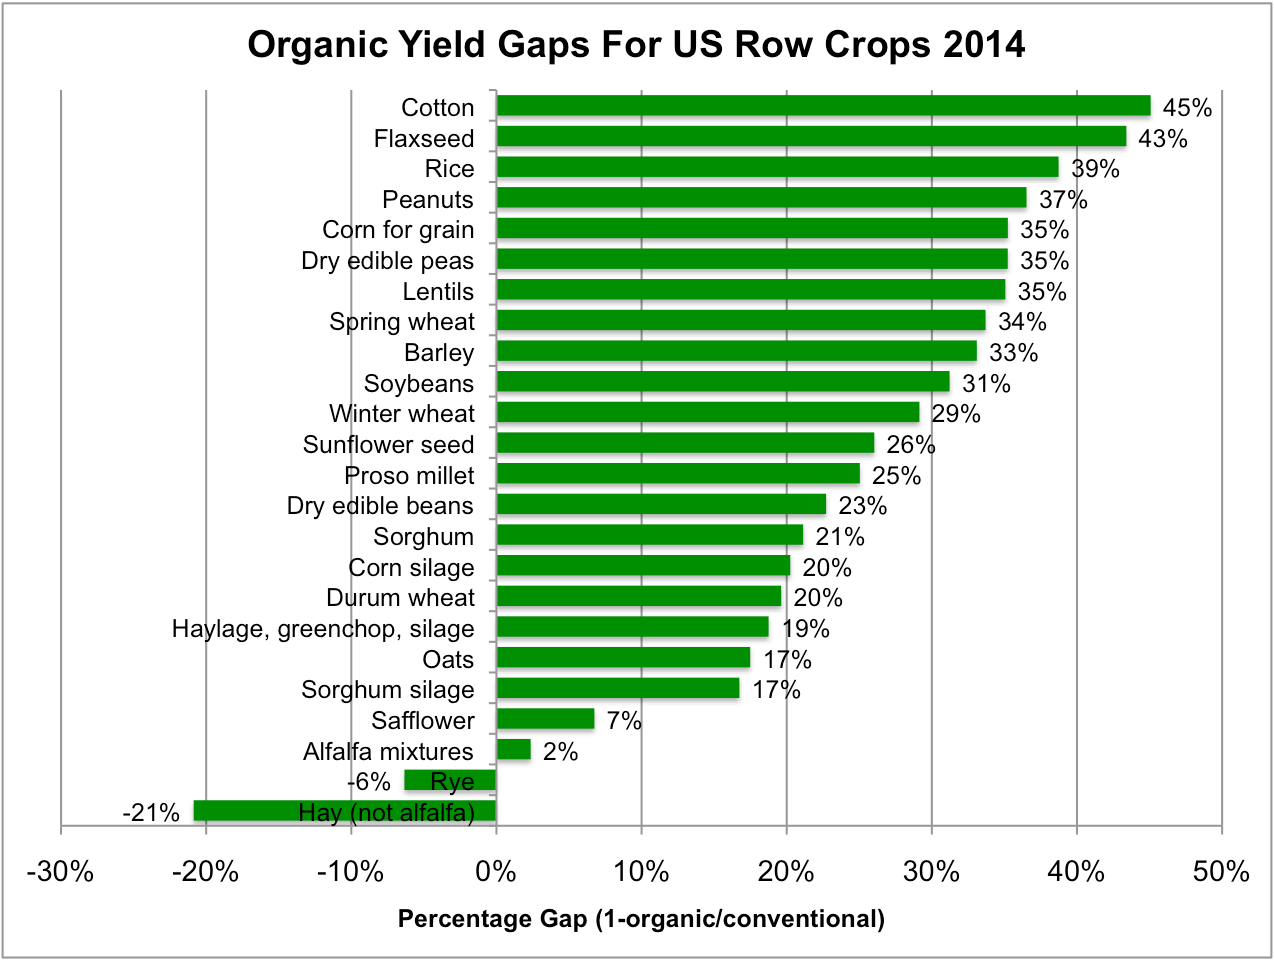 Organic yields are substantially lower for many major crops